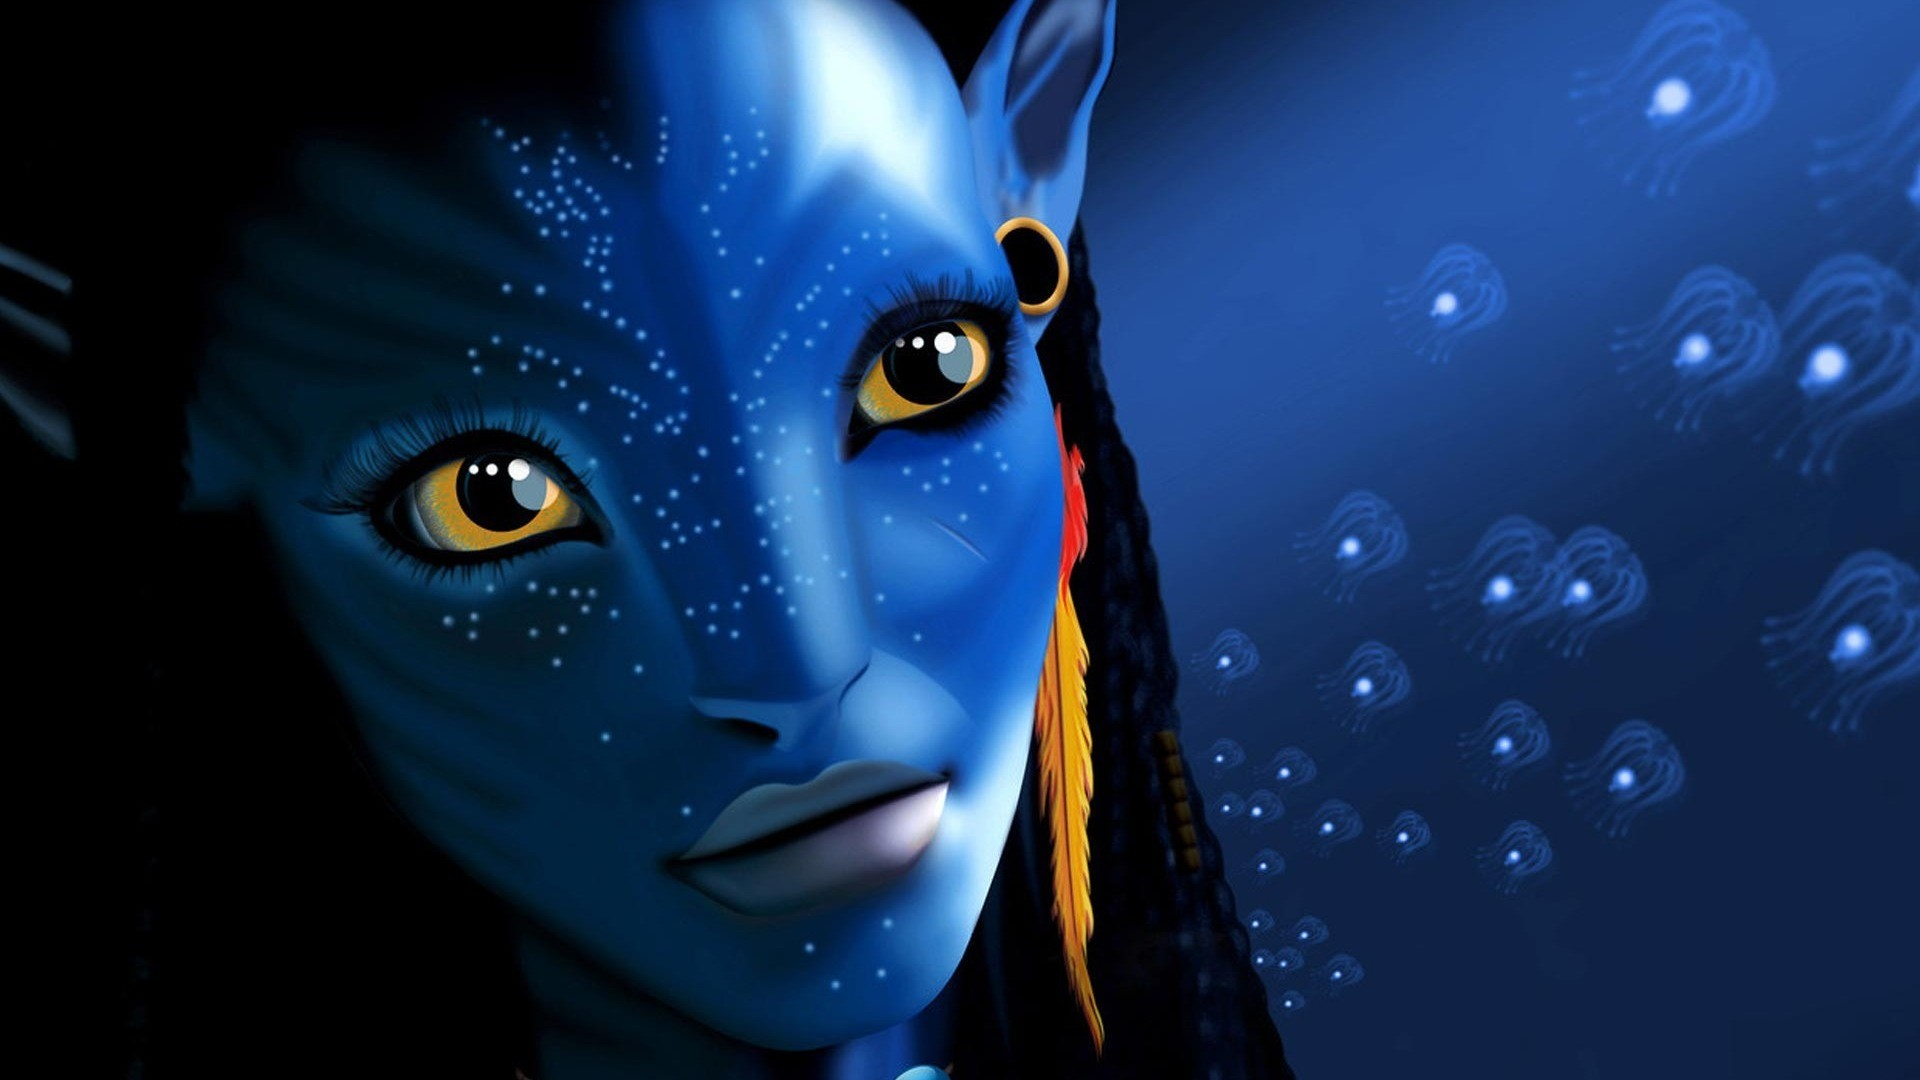 Jake Sully Avatar Disguise HD Desktop Wallpaper Cool Wallpapers